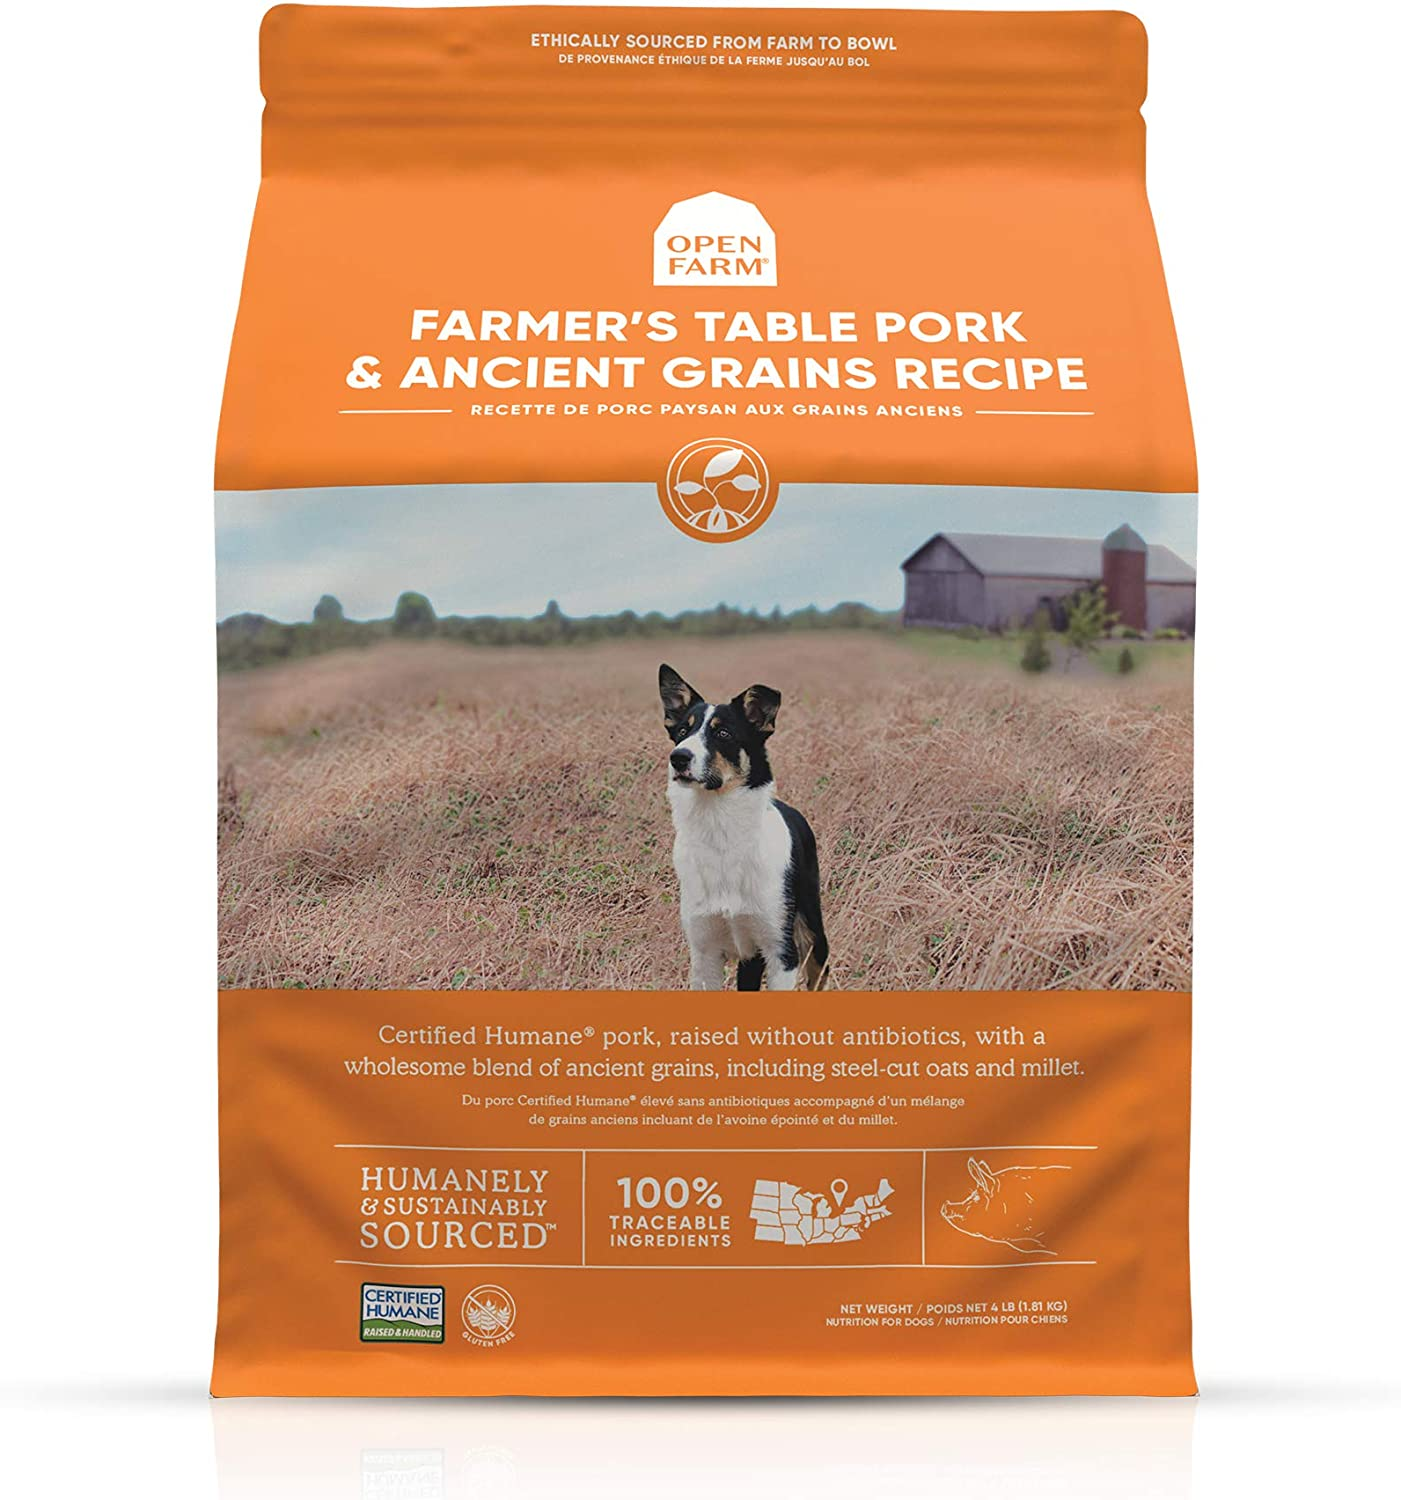 Open Farm Farmer's Table Pork & Ancient Grains Dry Dog Food, Humane Pork Recipe with Wholesome Grains and No Artificial Flavors or Preservatives, 22 lbs